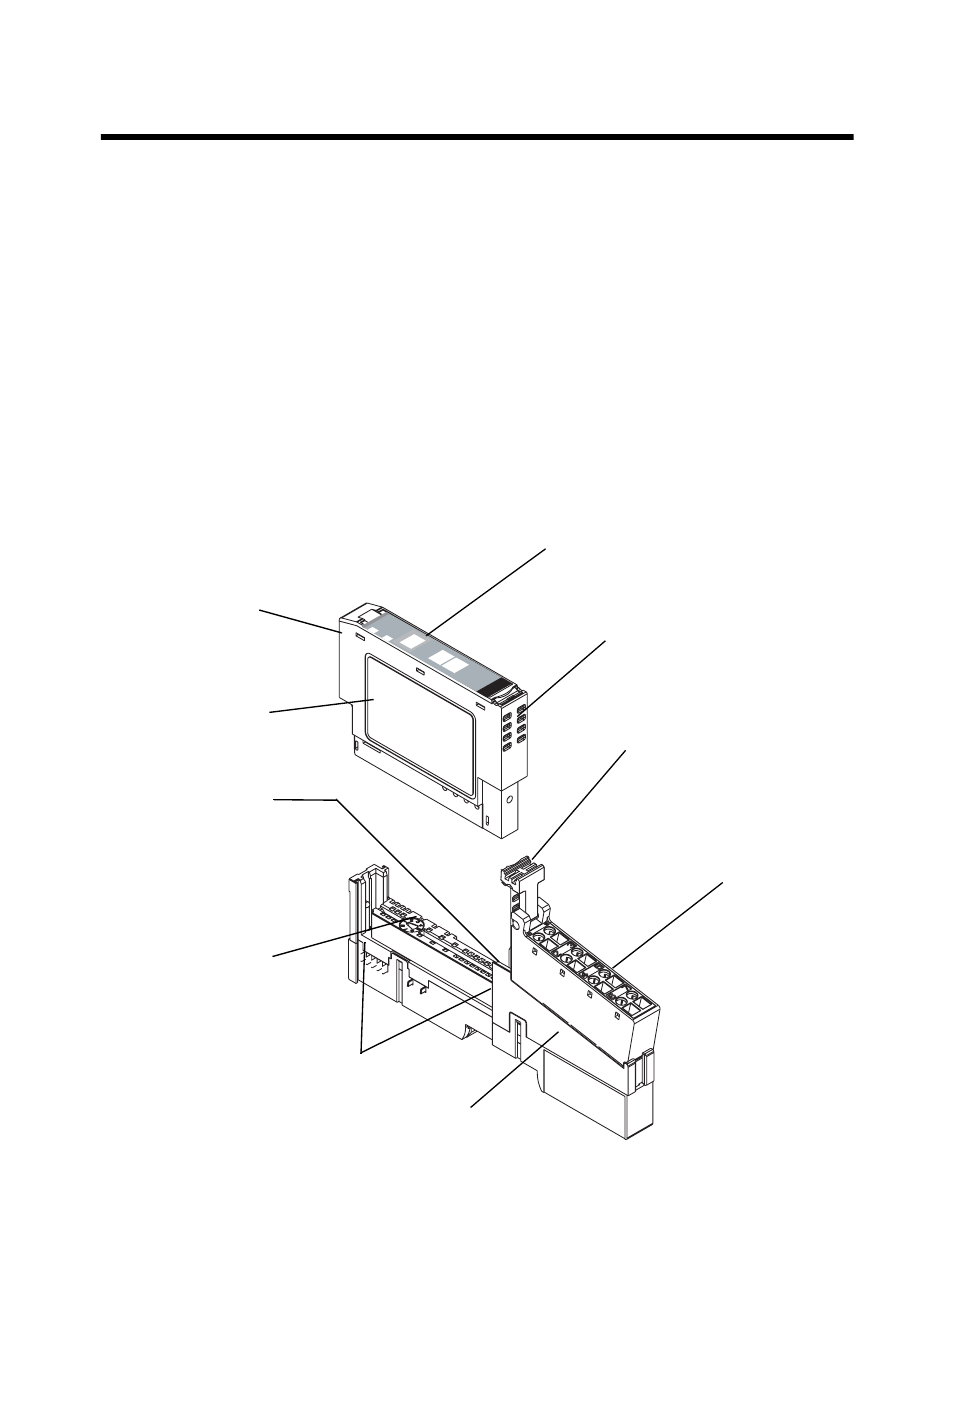 hight resolution of before you begin identify module components rockwell automation 1734 oe2v c point i o 2 current and 2 voltage output analog modules user manual page 5